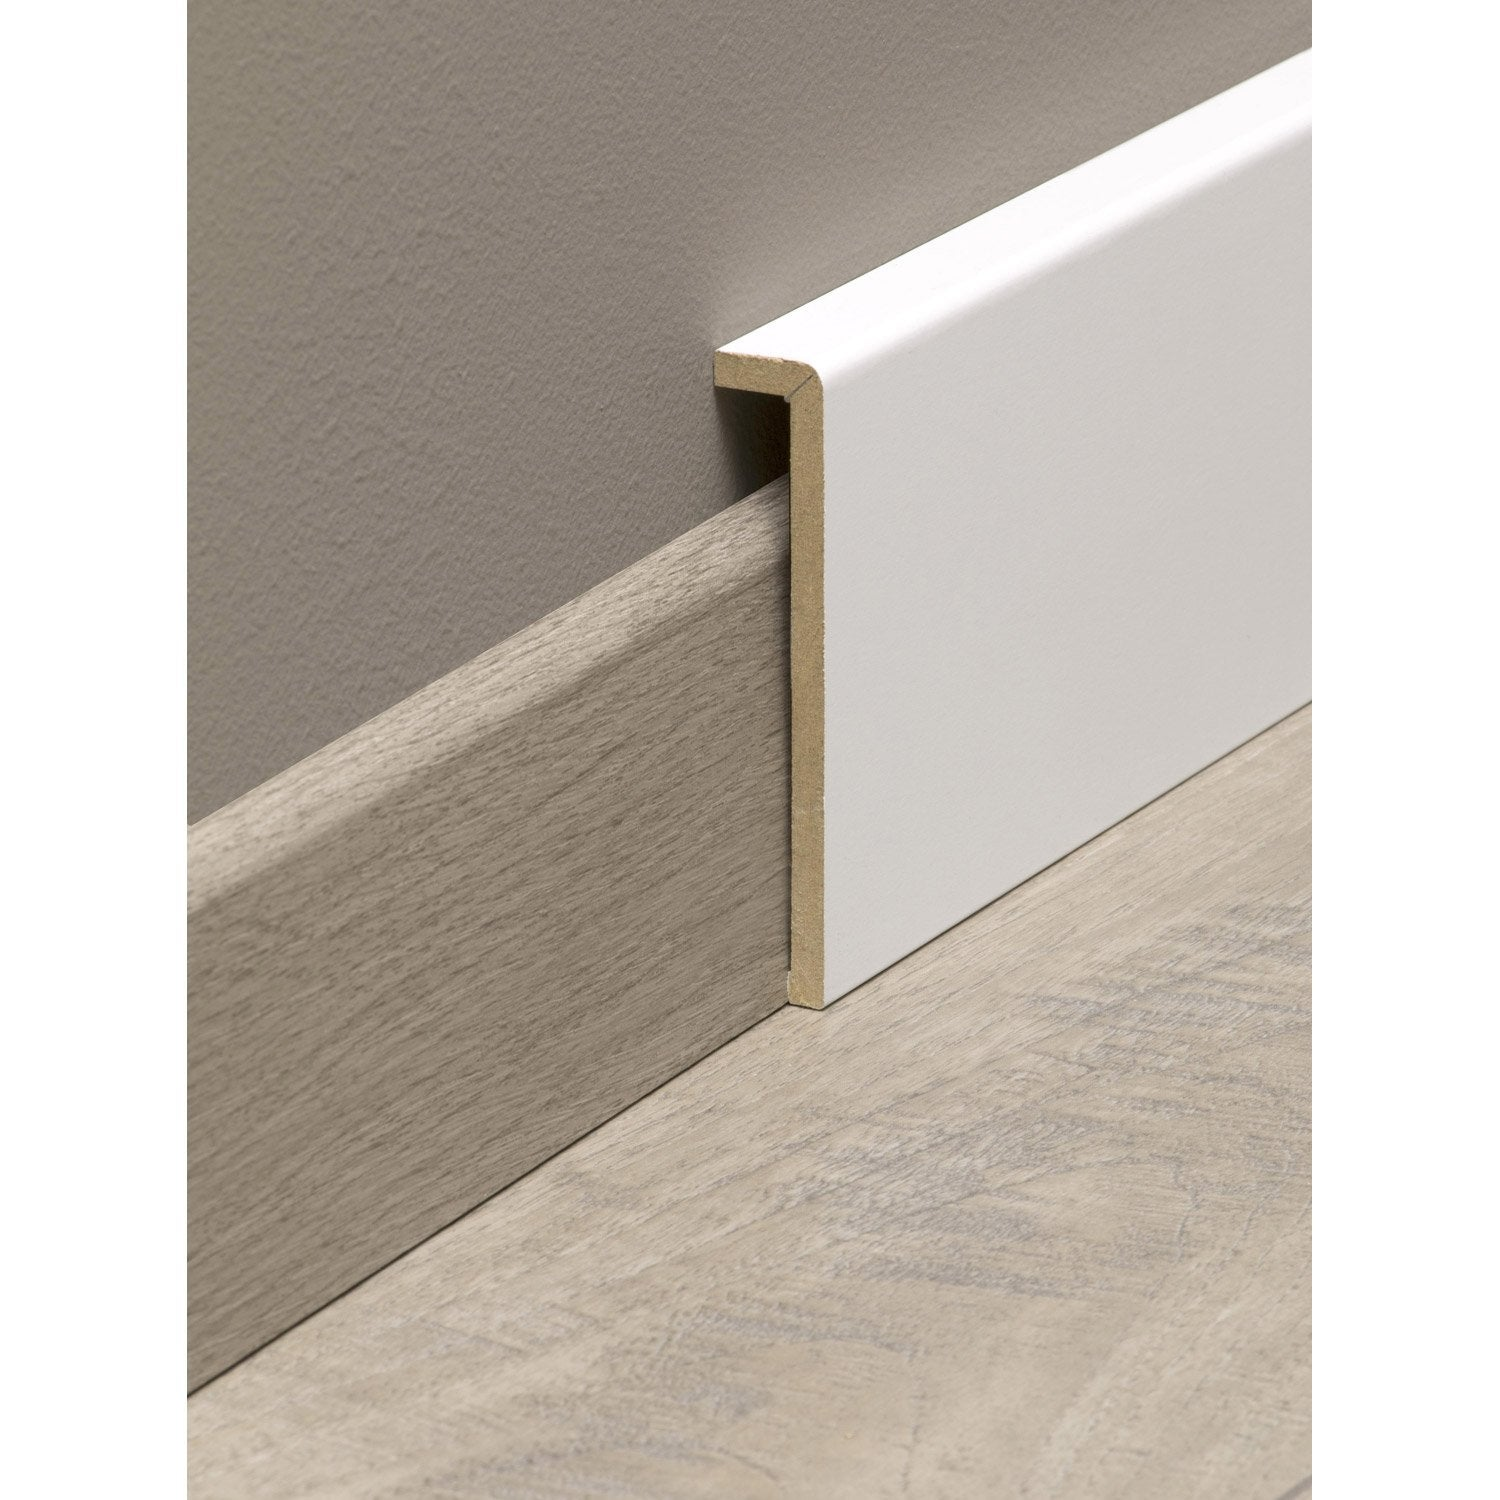 Surplinthe de r novation m dium mdf m lamin blanc 19 x for Pose de plinthes carrelage